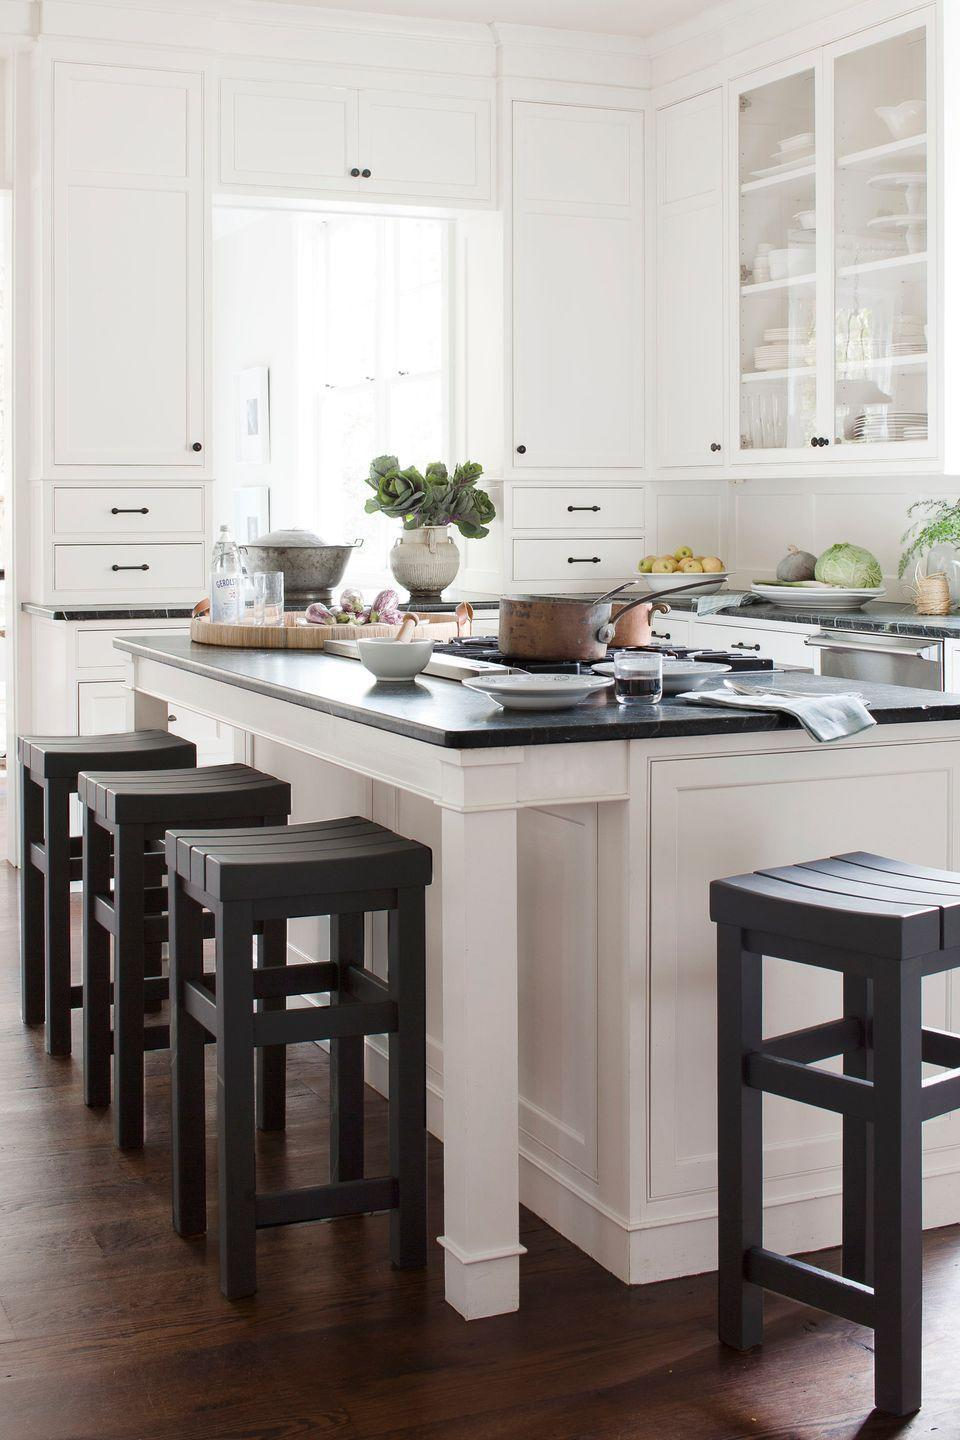 """<p>Dark-walnut floors, deep green soapstone counters, and custom stools (painted Benjamin Moore's Phelps Black) add balance and contrast to the kitchen's white cabinetry in this <a href=""""https://www.countryliving.com/home-design/house-tours/g1277/traditional-white-decorating-ideas/"""" rel=""""nofollow noopener"""" target=""""_blank"""" data-ylk=""""slk:Washington, D.C., home"""" class=""""link rapid-noclick-resp"""">Washington, D.C., home</a>. </p>"""